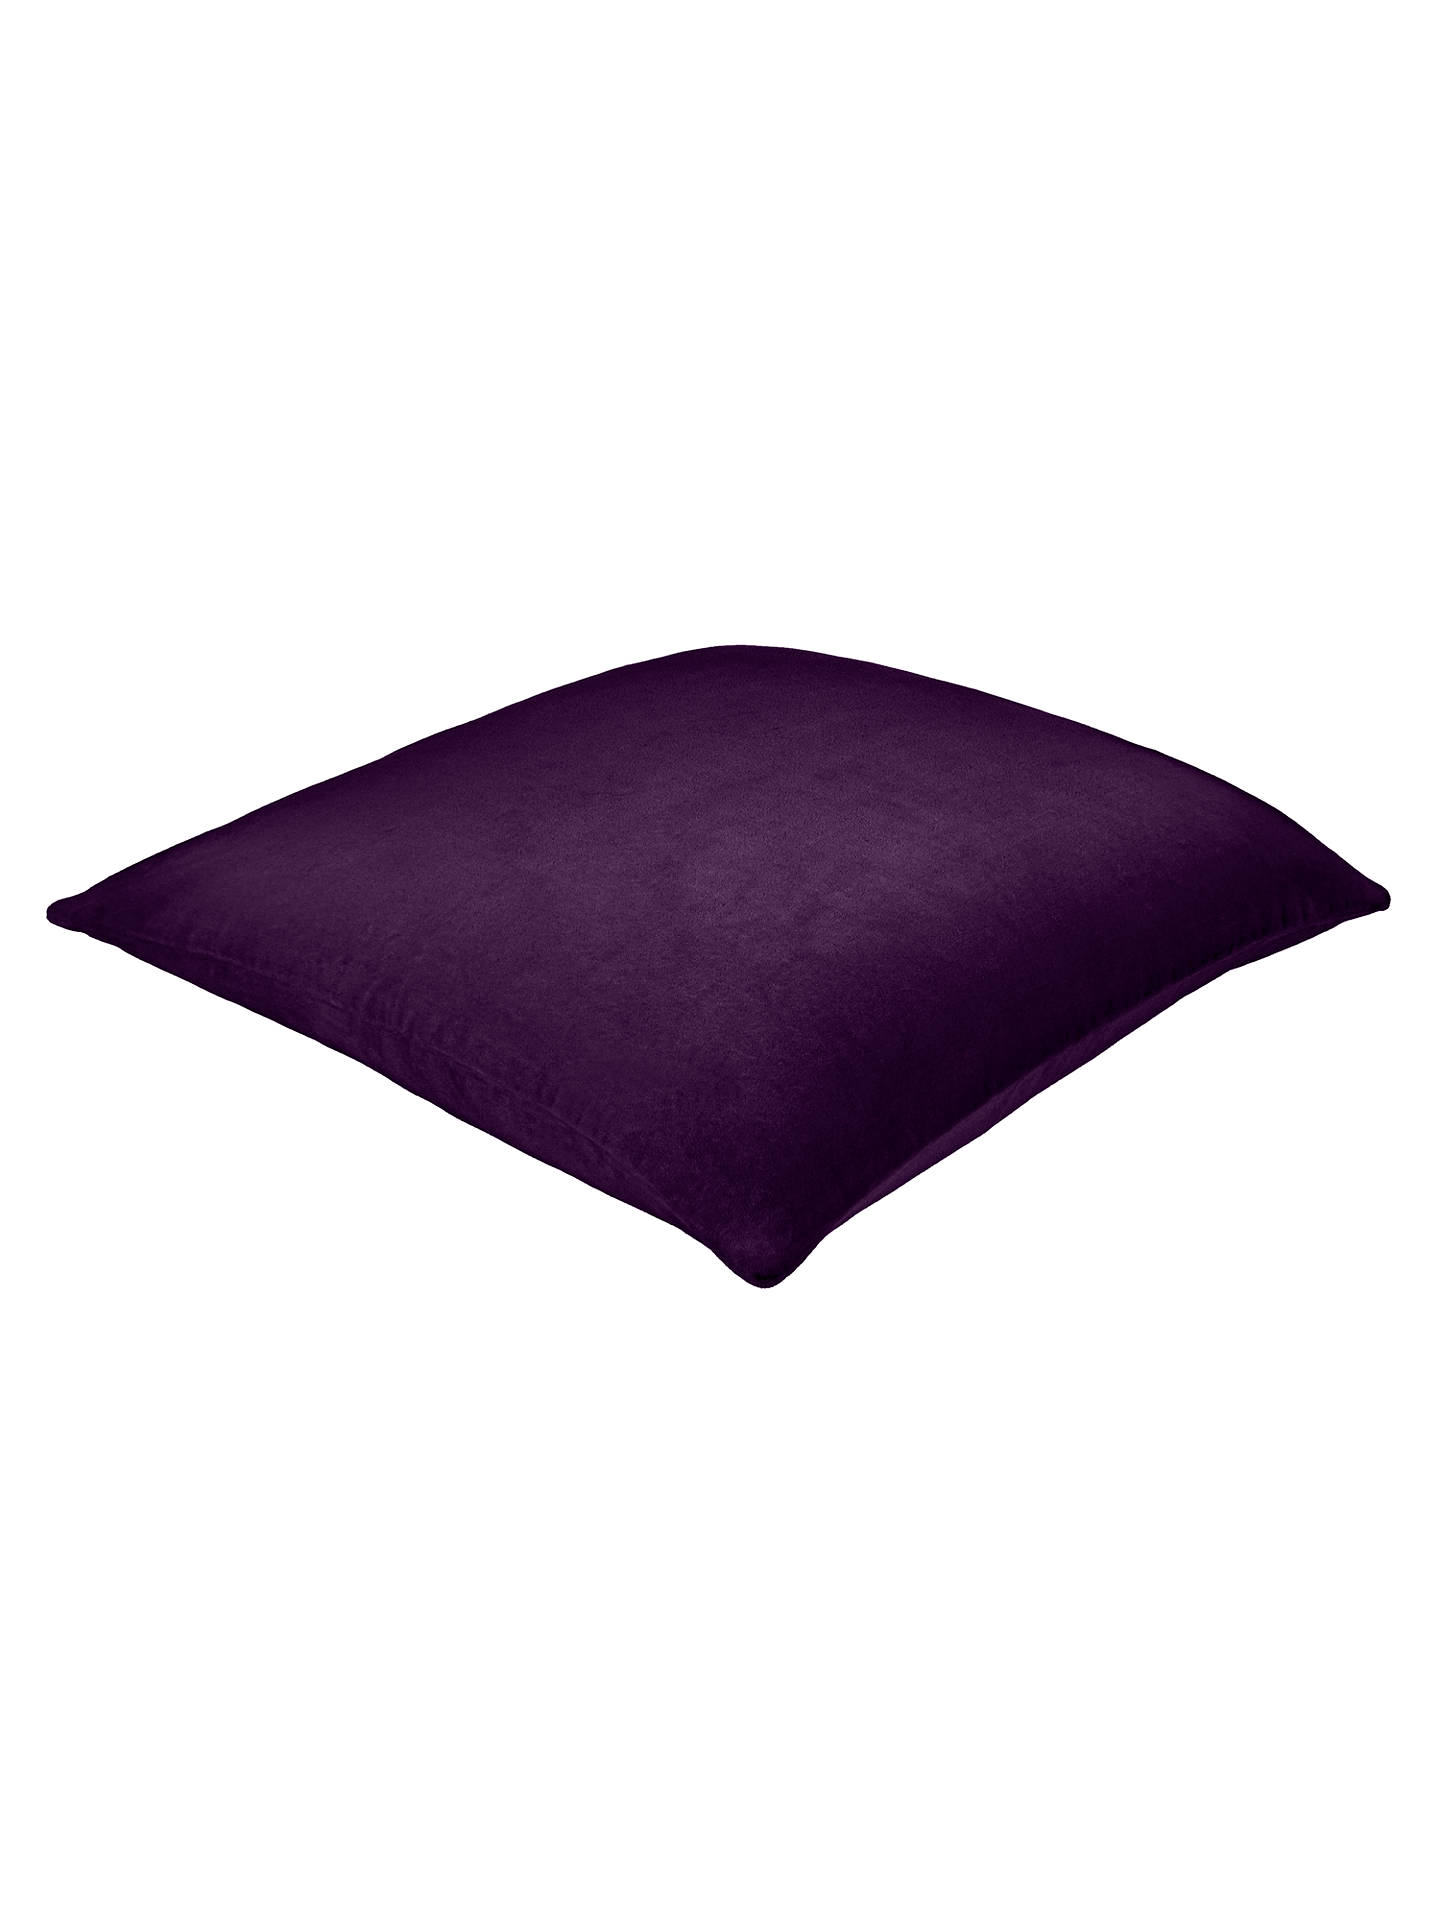 BuyJohn Lewis & Partners Cotton Velvet Cushion, Fig Online at johnlewis.com